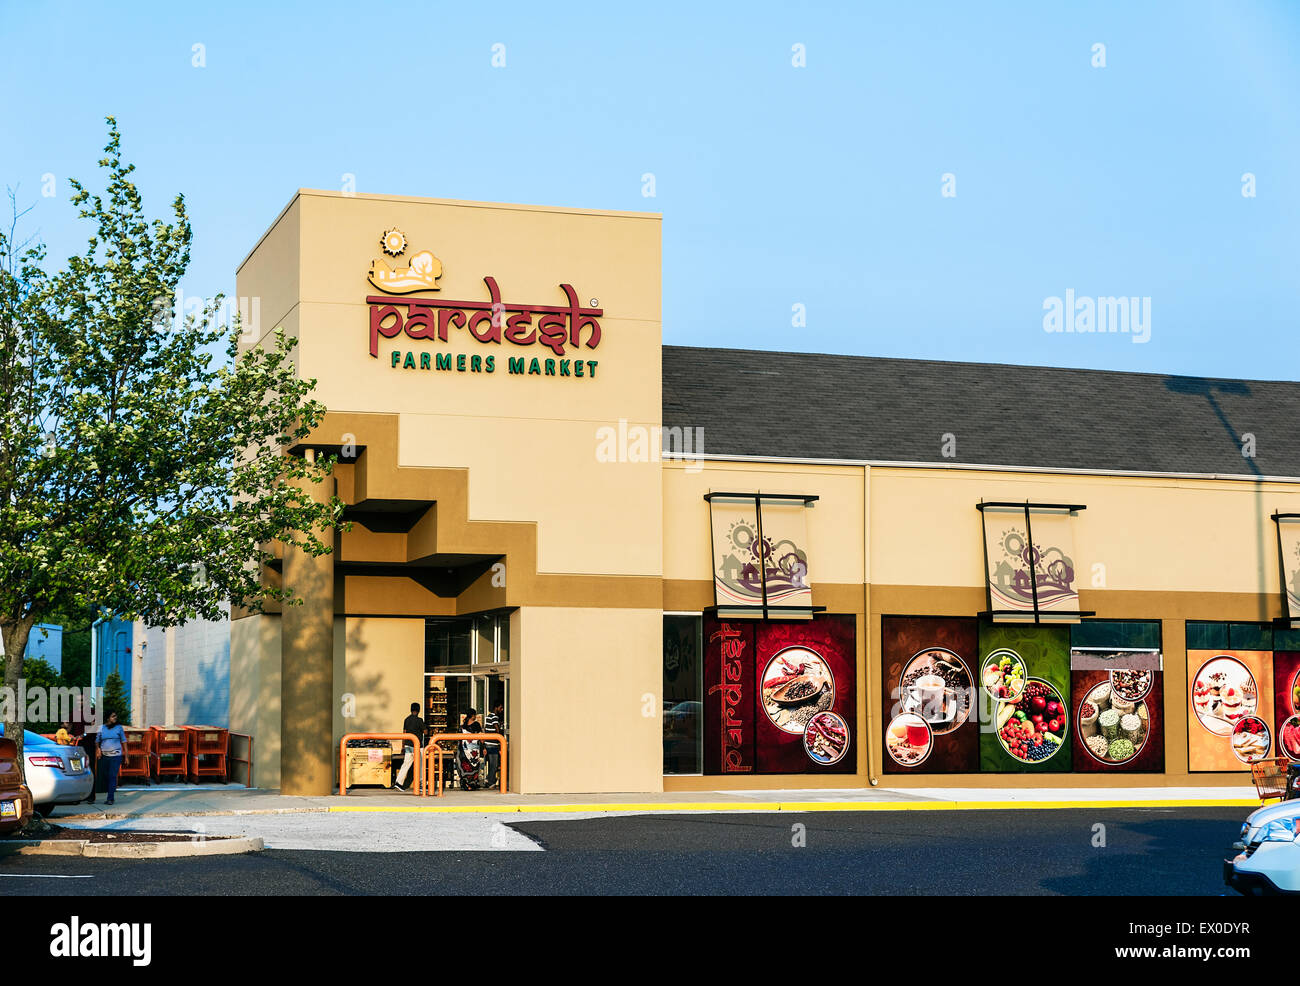 Pardesh Indian Farmers Market, Mount Laural, New Jersey, USA - Stock Image